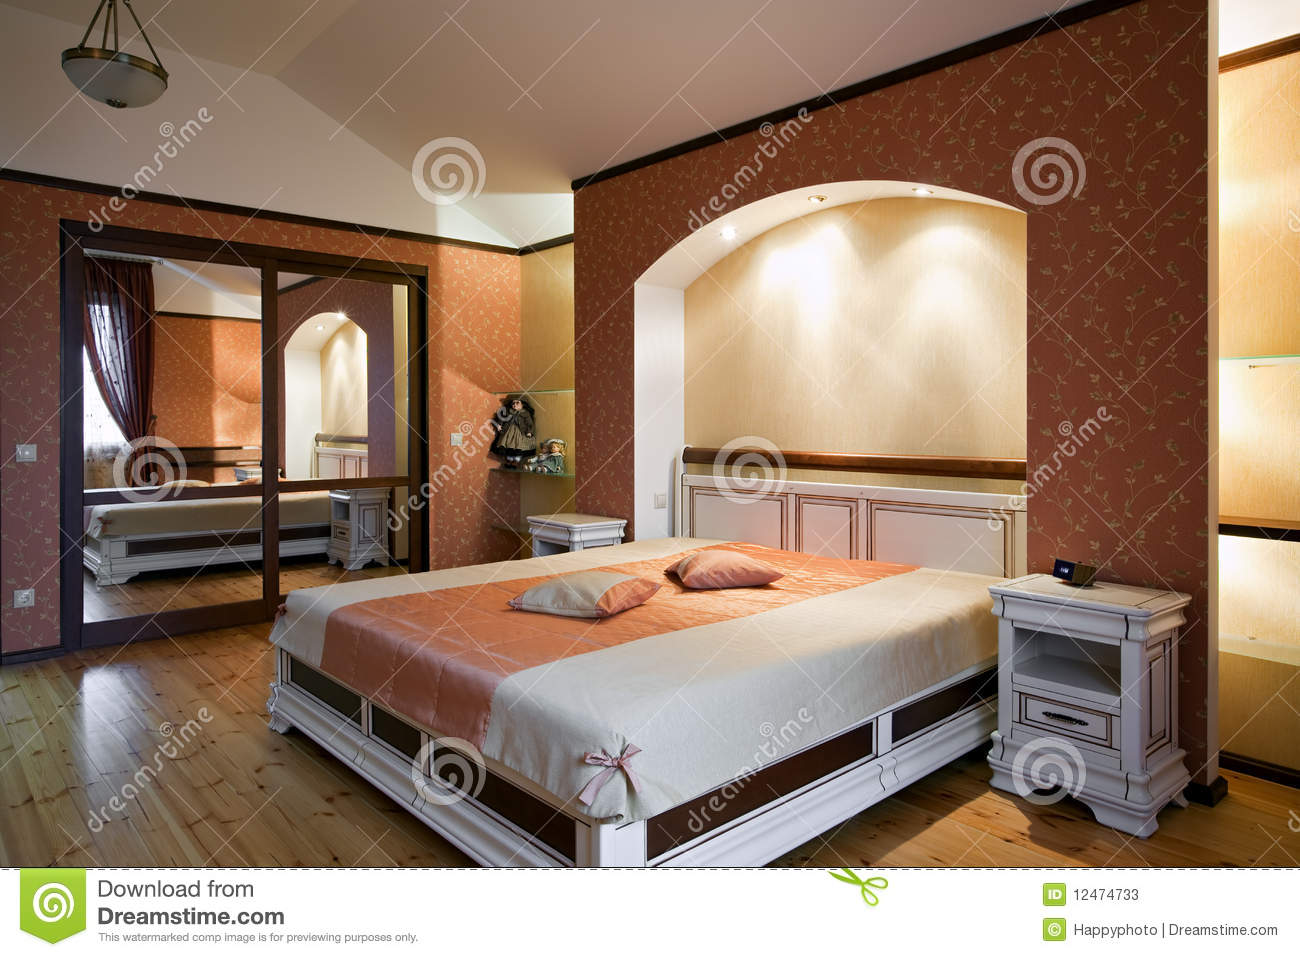 Beautiful bedroom interior stock photos image 12474733 for Beautiful bedroom interior